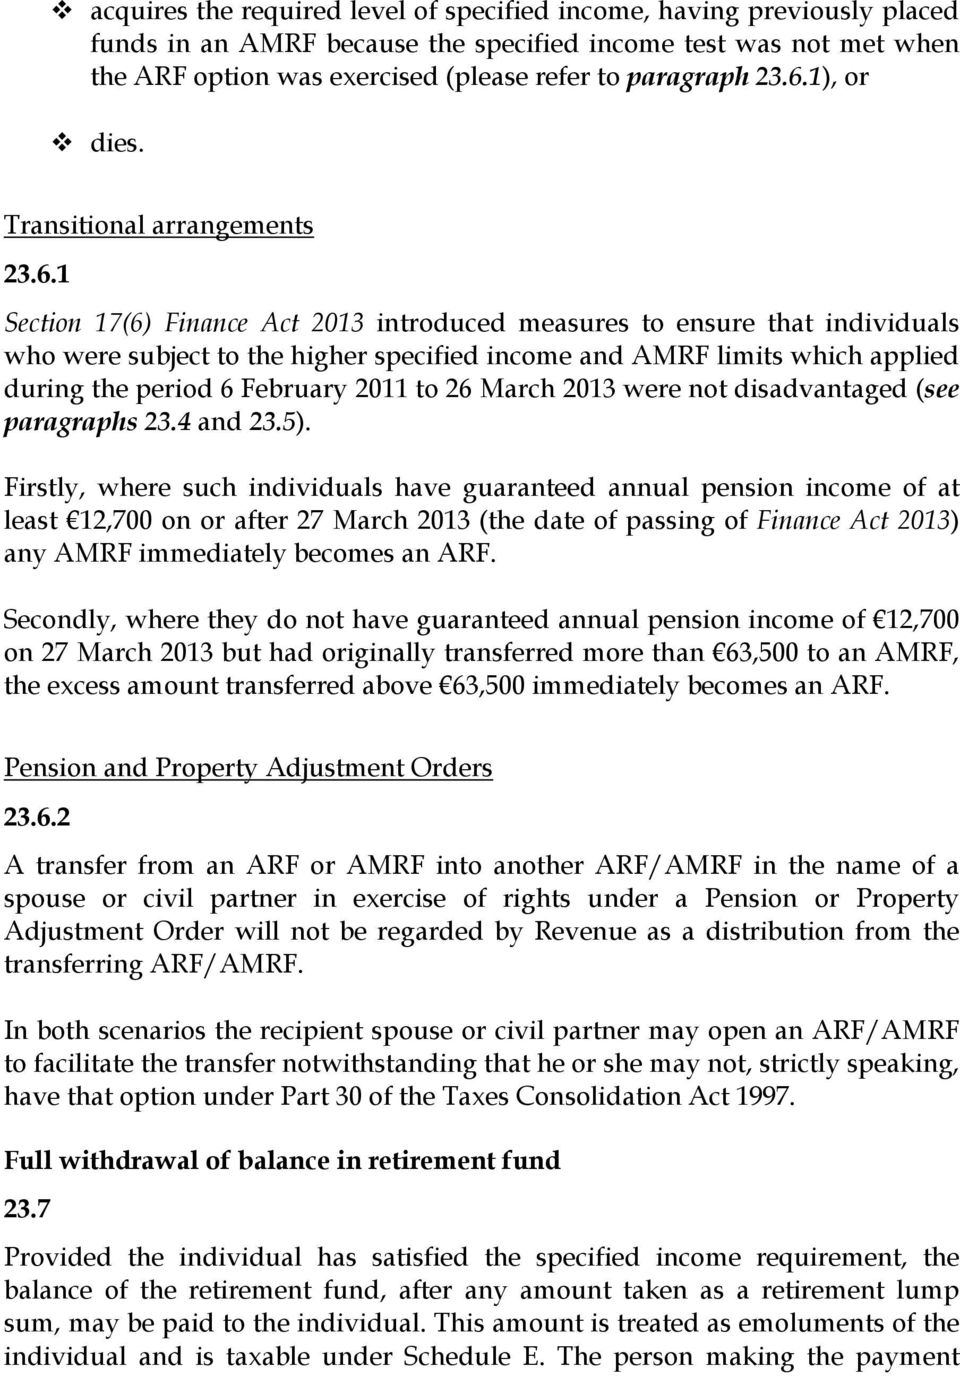 applied during the period 6 February 2011 to 26 March 2013 were not disadvantaged (see paragraphs 23.4 and 23.5).